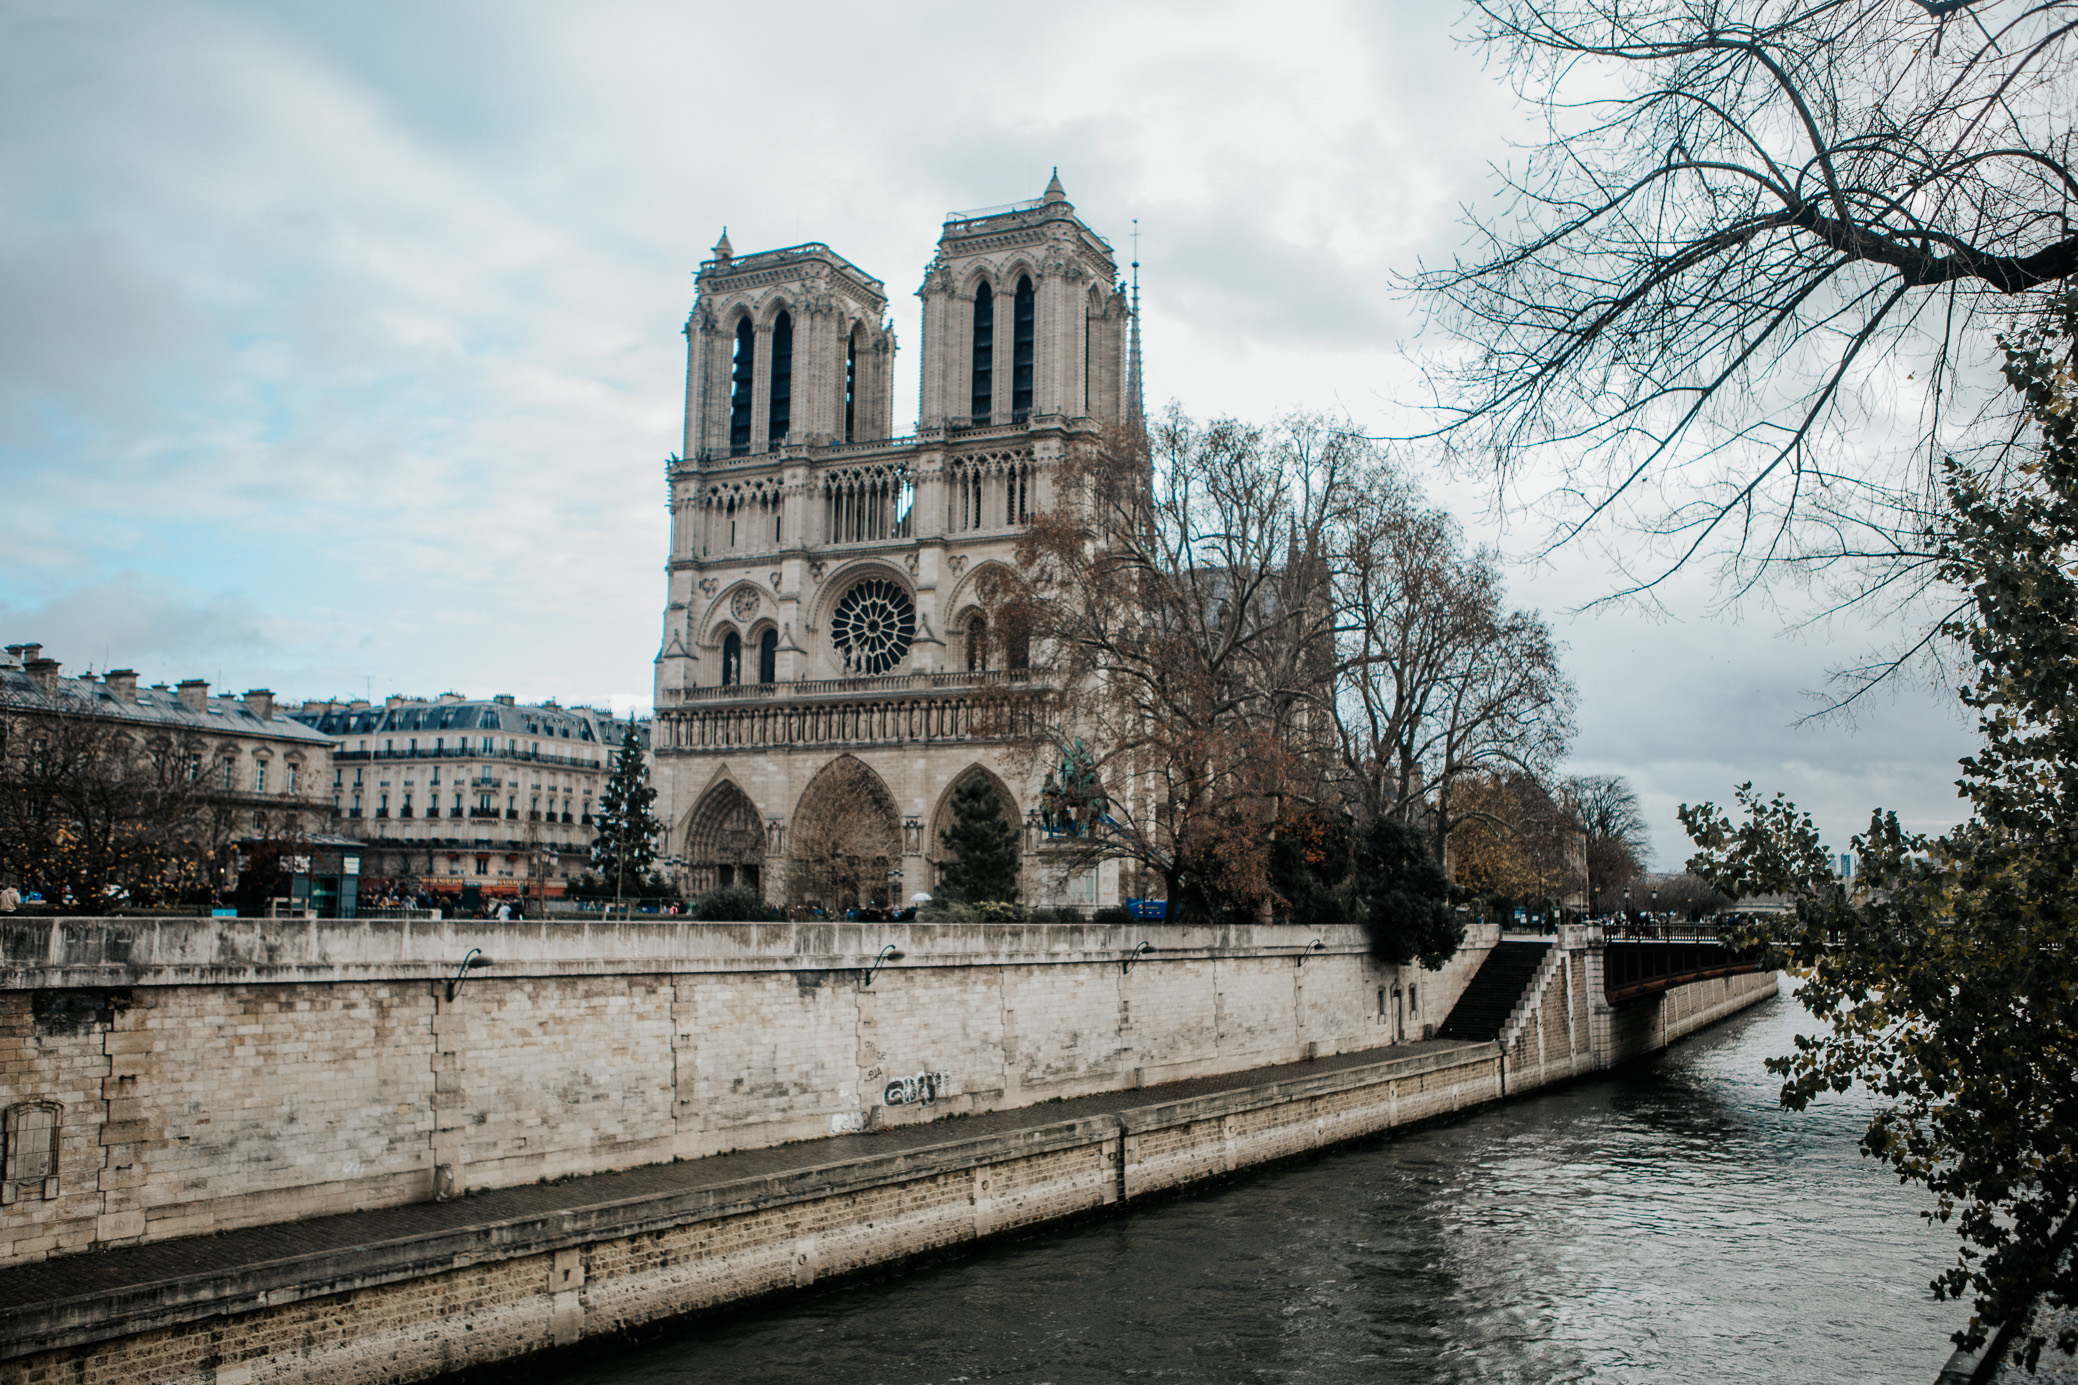 Notre Dame Cathedral | Paris, France | December 7th, 2018 | (Photo by David A. Smith / DSmithScenes)